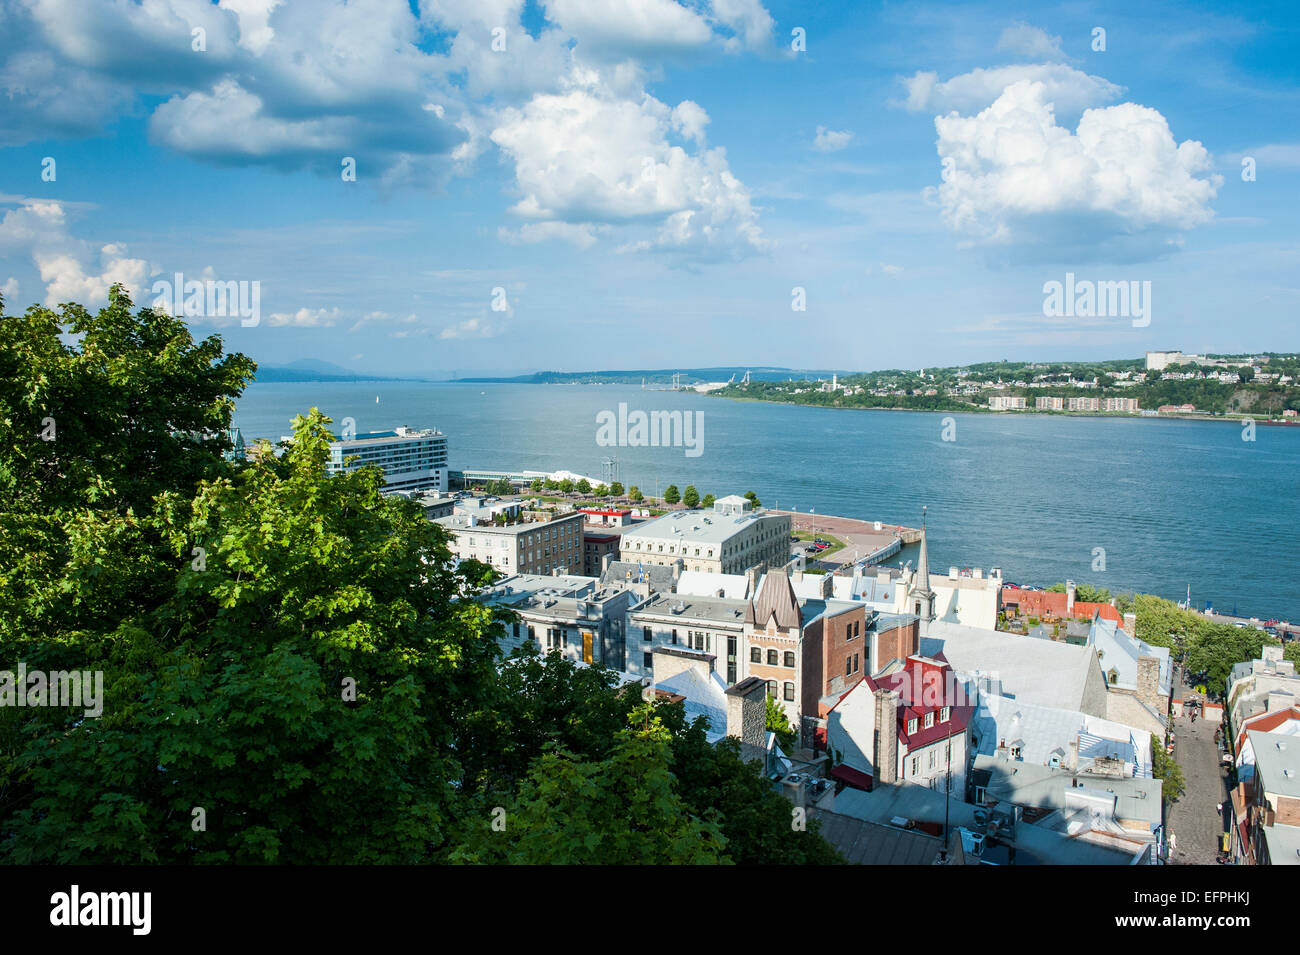 View over the St. Lawrence River, Quebec City, Quebec, Canada, North America - Stock Image